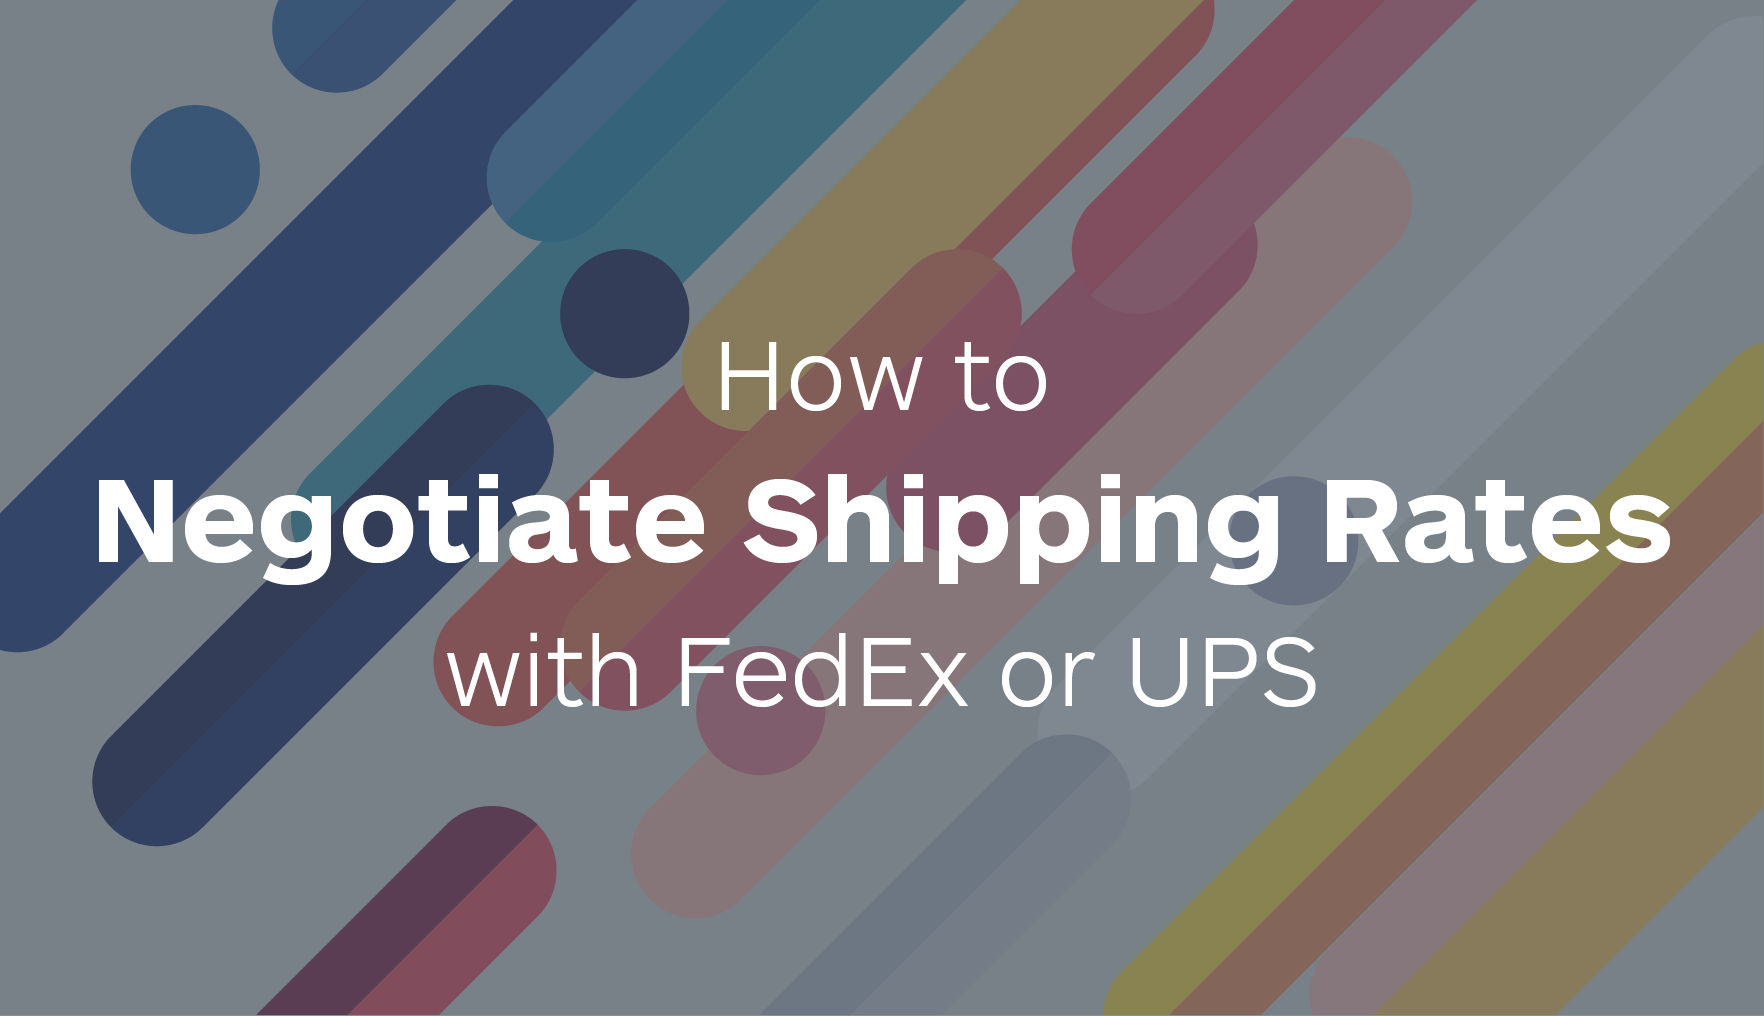 How to Negotiate Shipping Rates with FedEx or UPS